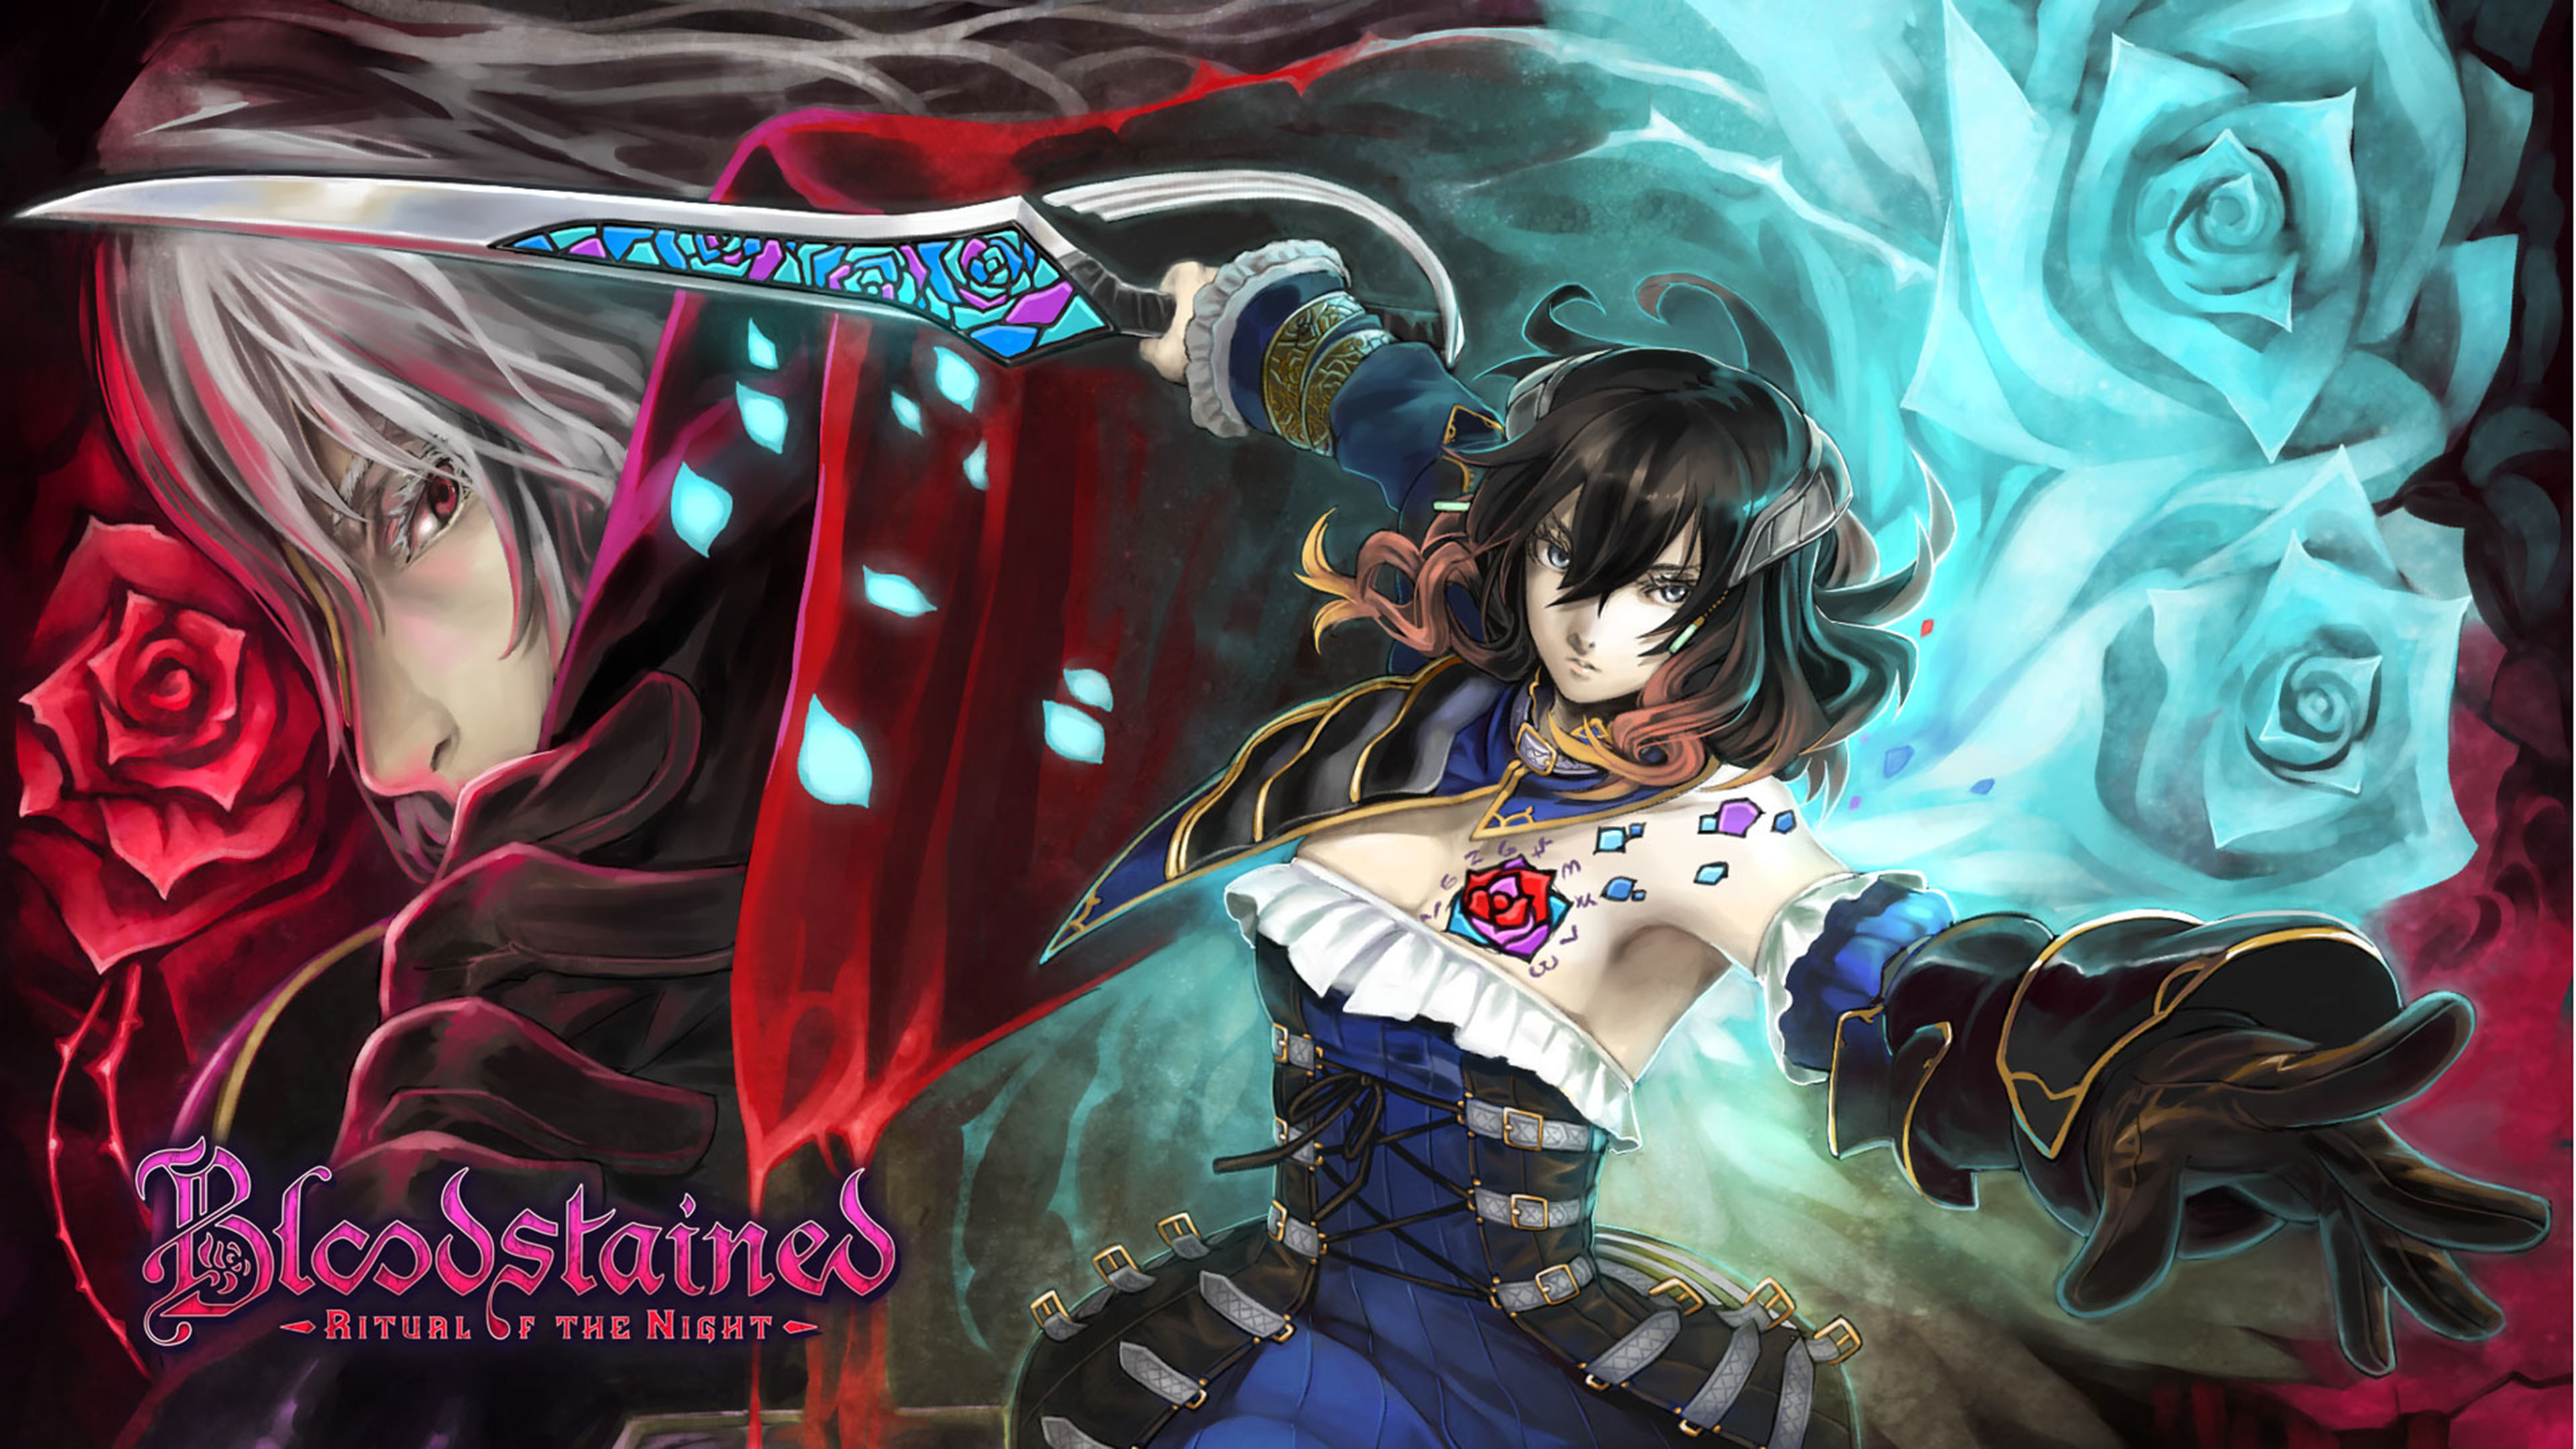 Res: 3840x2160, Bloodstained Ritual of the Night 4K Wallpaper ...